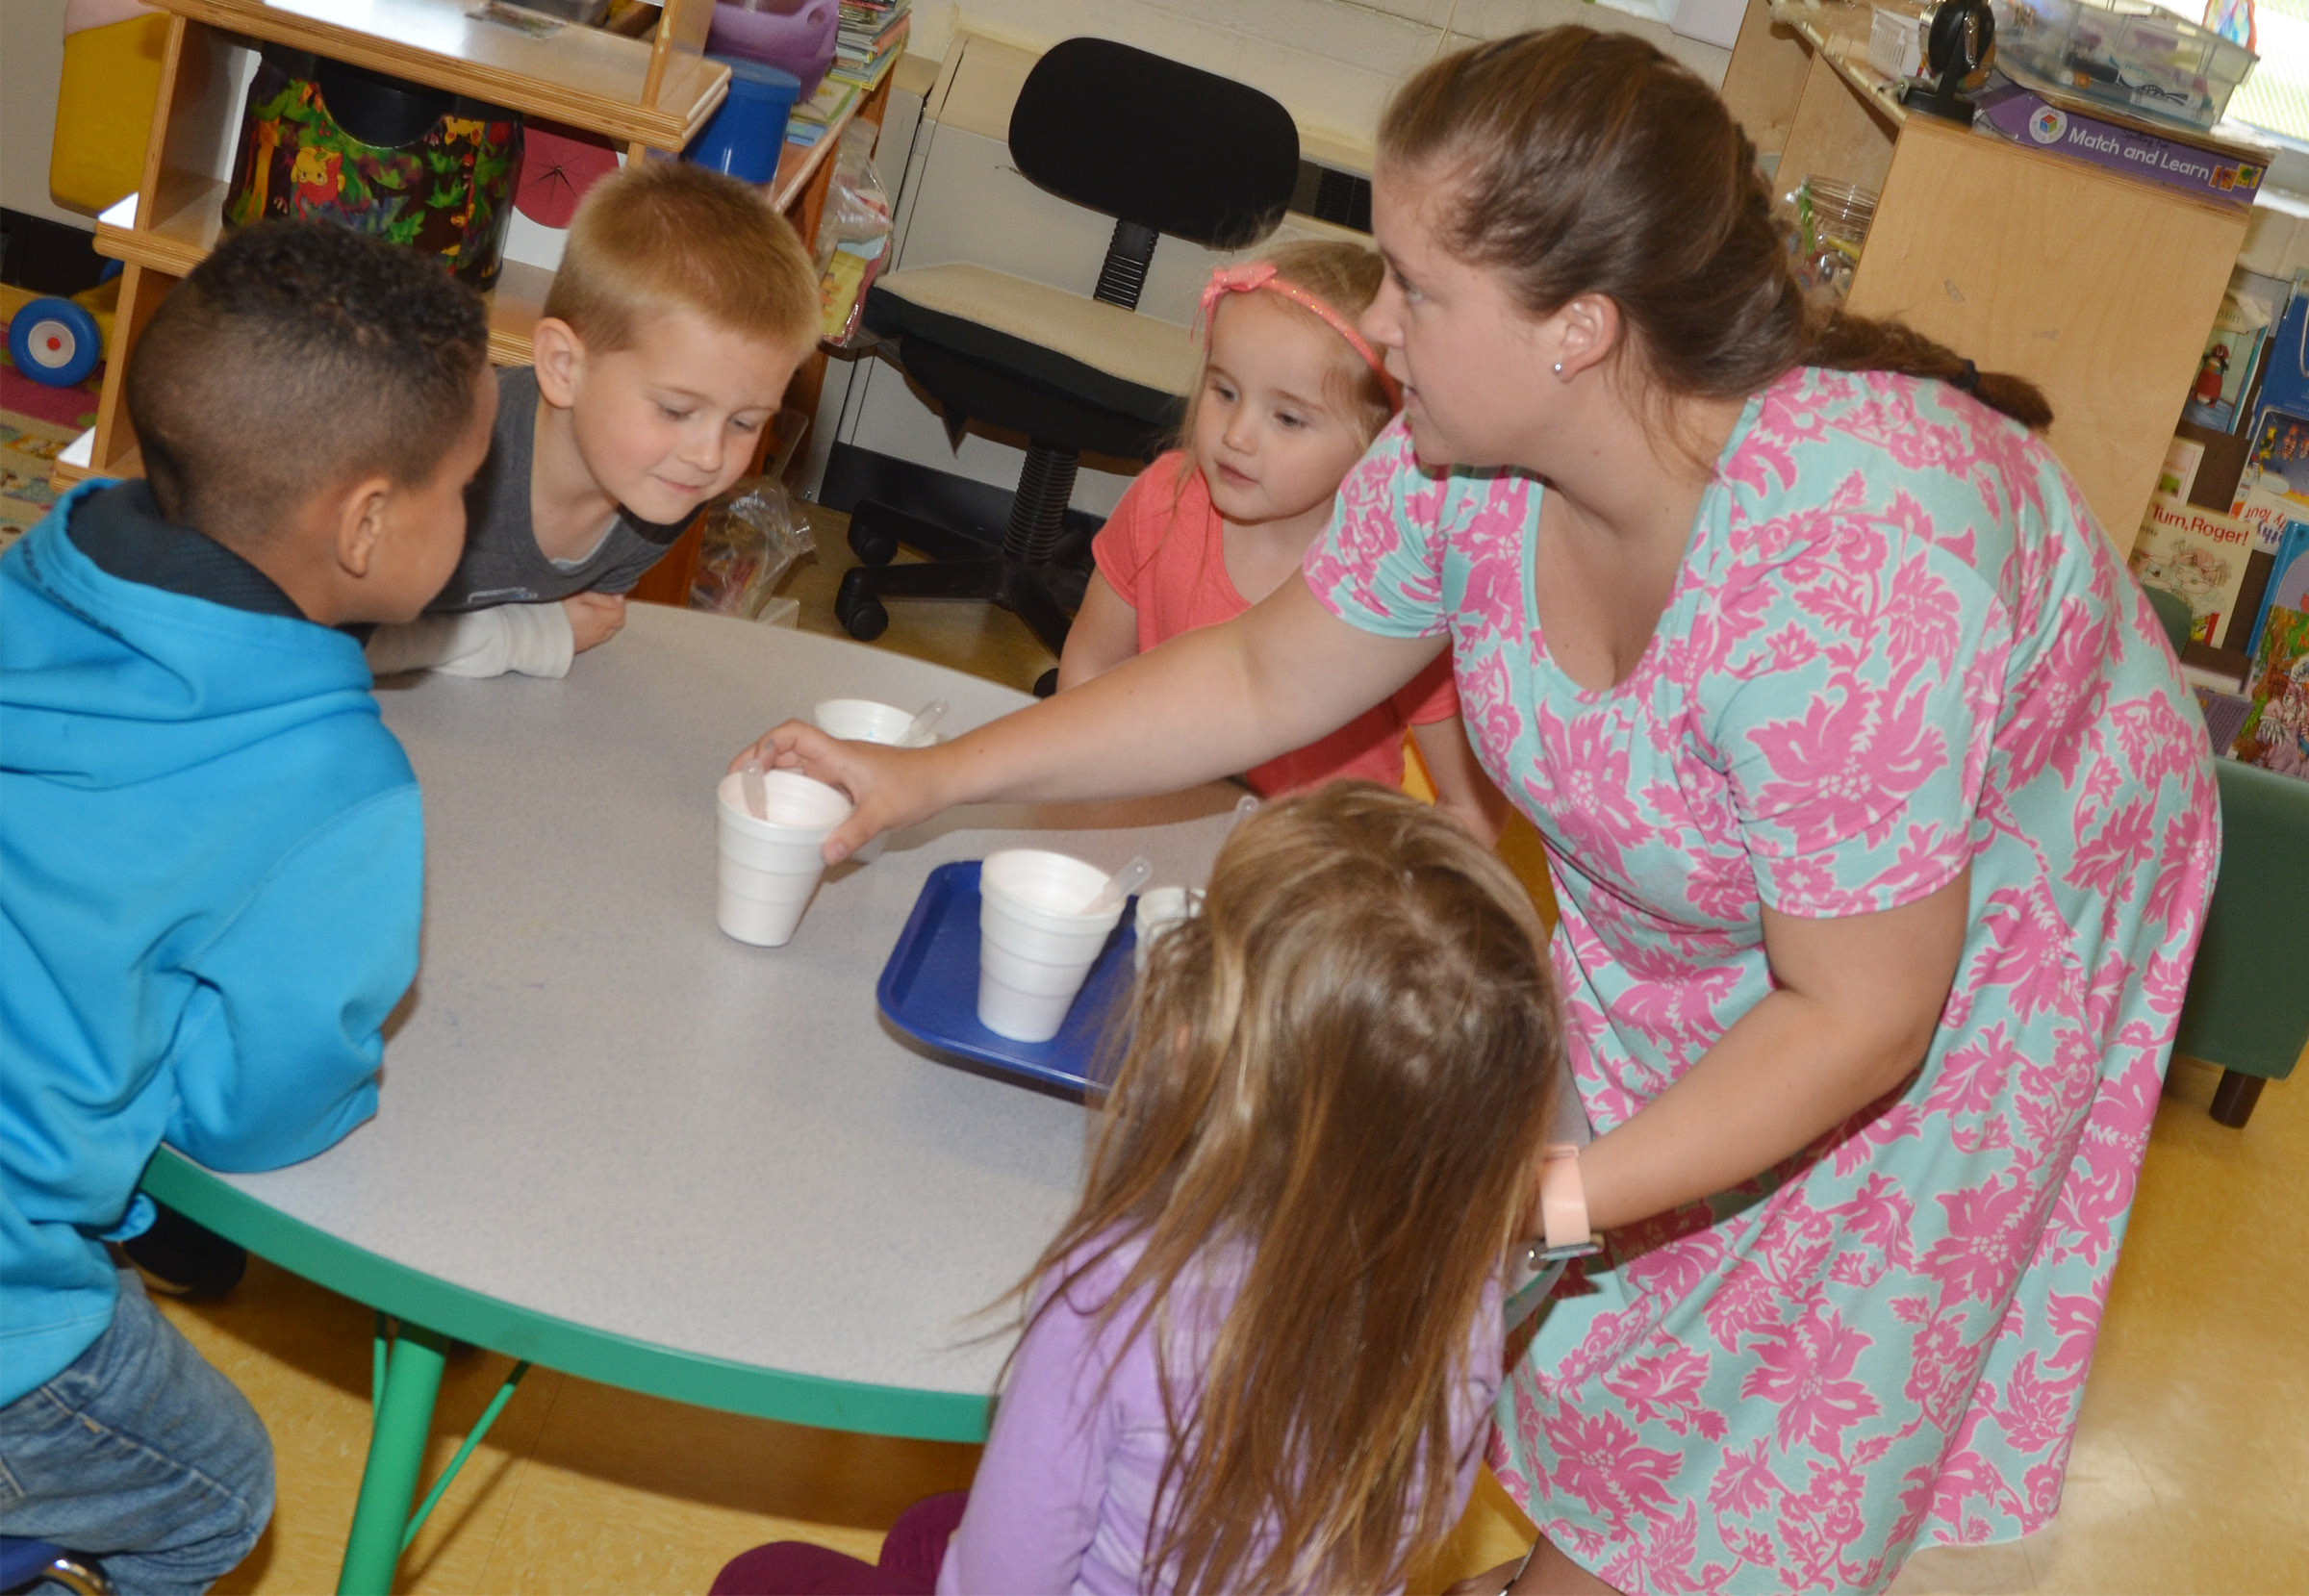 Campbellsville University education student Jordan Bray gives preschool students cups of colored vinegar. They will use the vinegar to see how it reacts with baking soda.